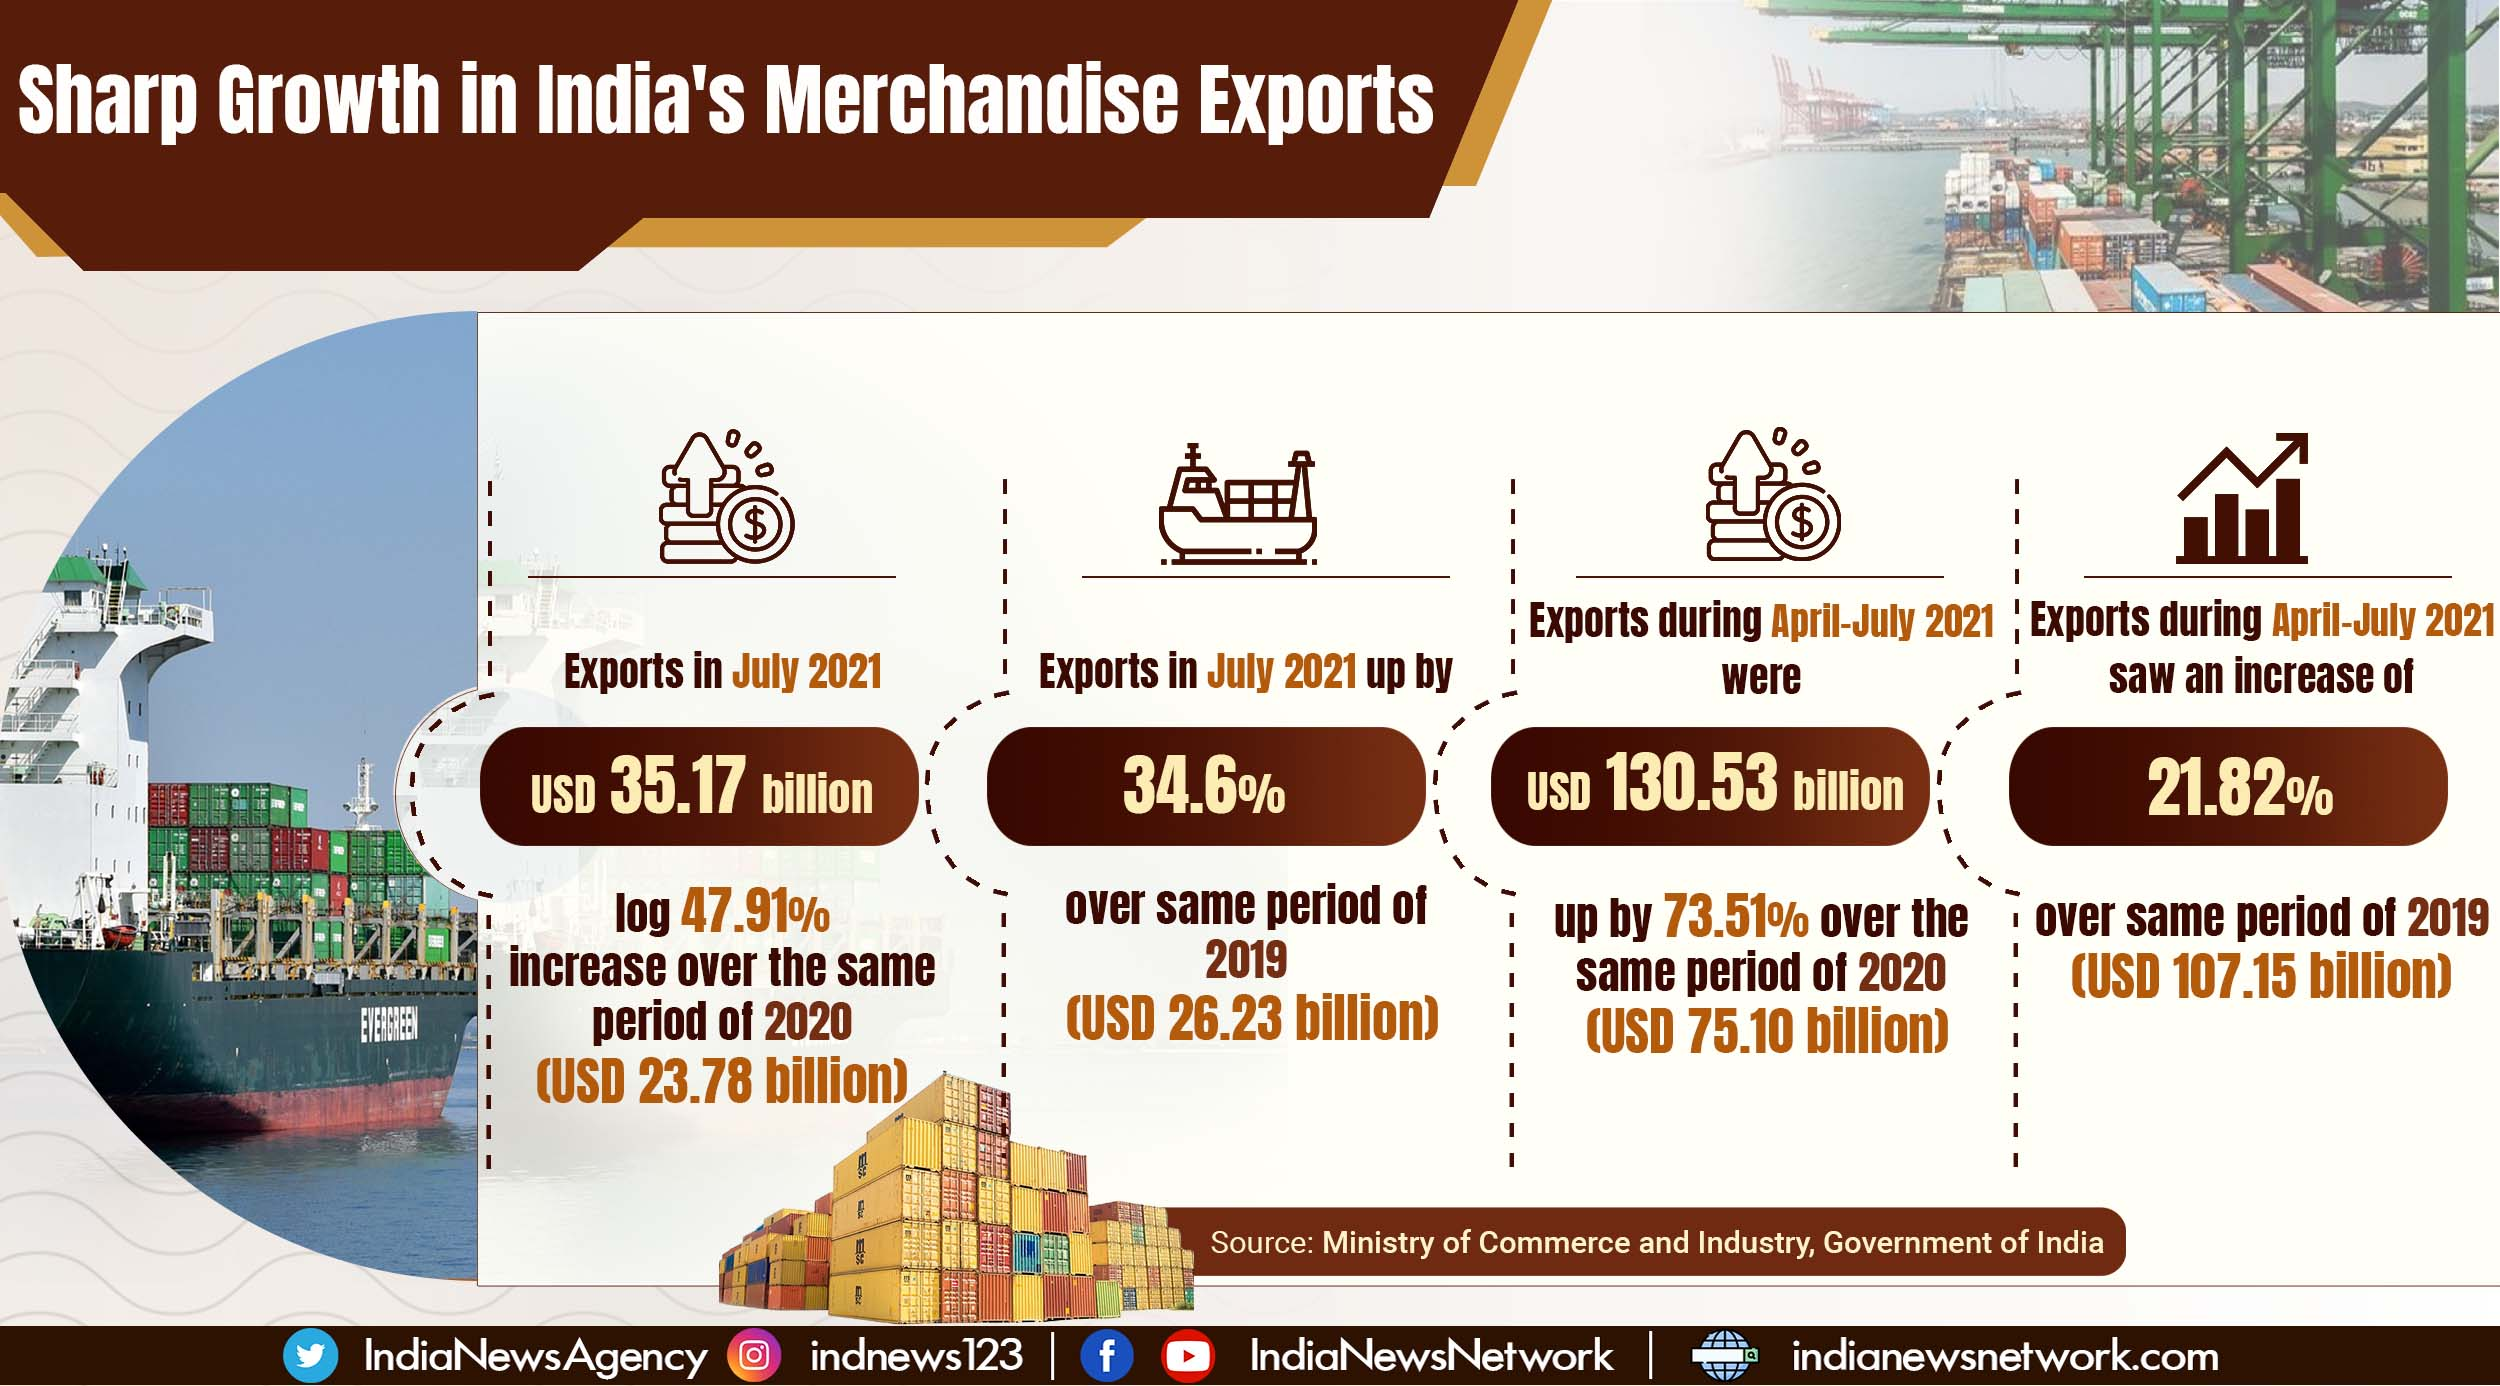 At USD 35.17 billion, India's July 2021 merchandise exports highest-ever in a month